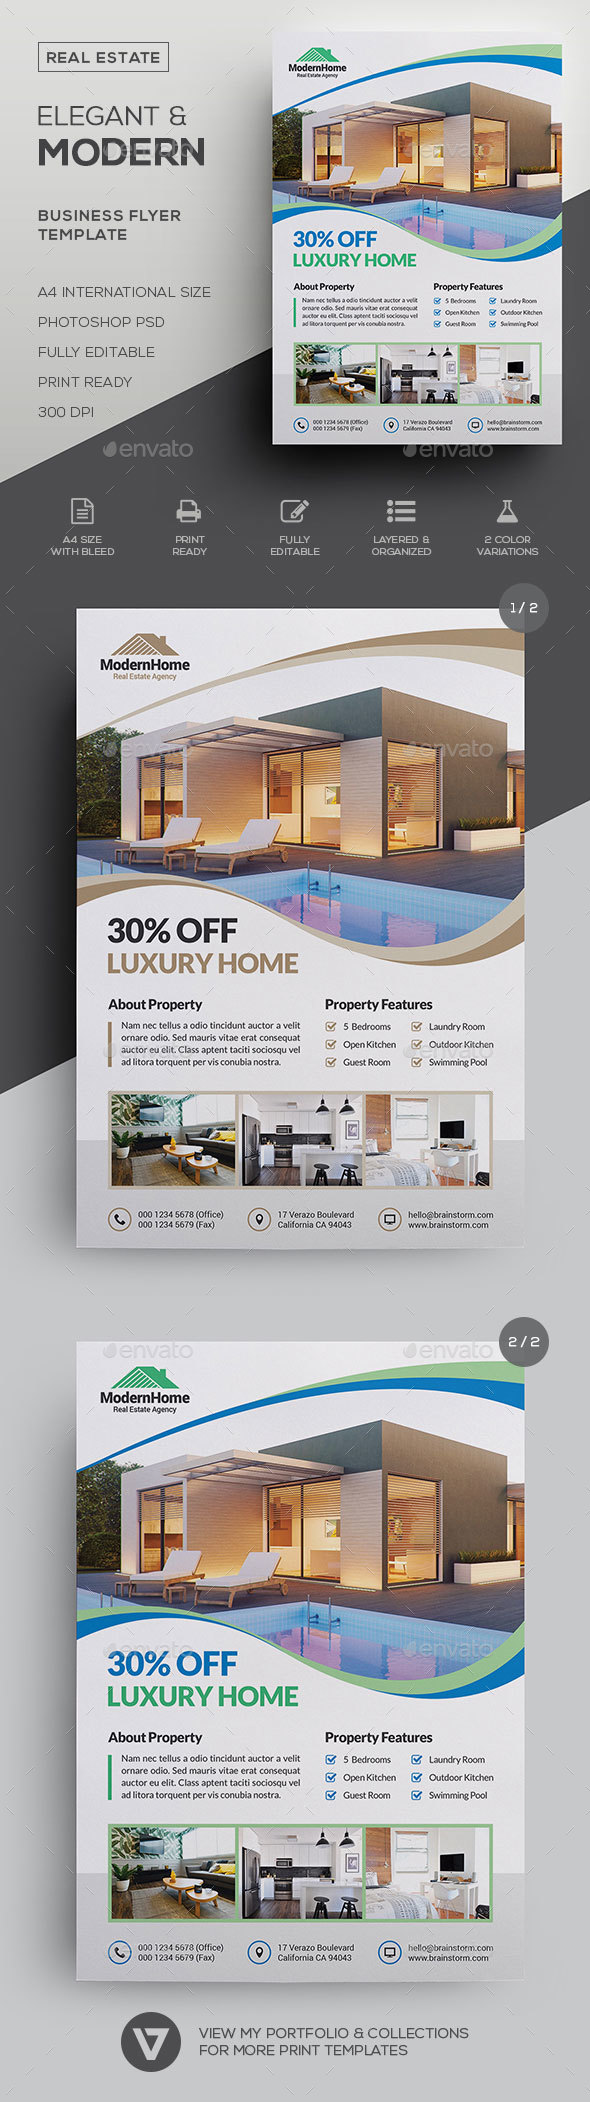 Real Estate Flyer Graphics, Designs & Templates